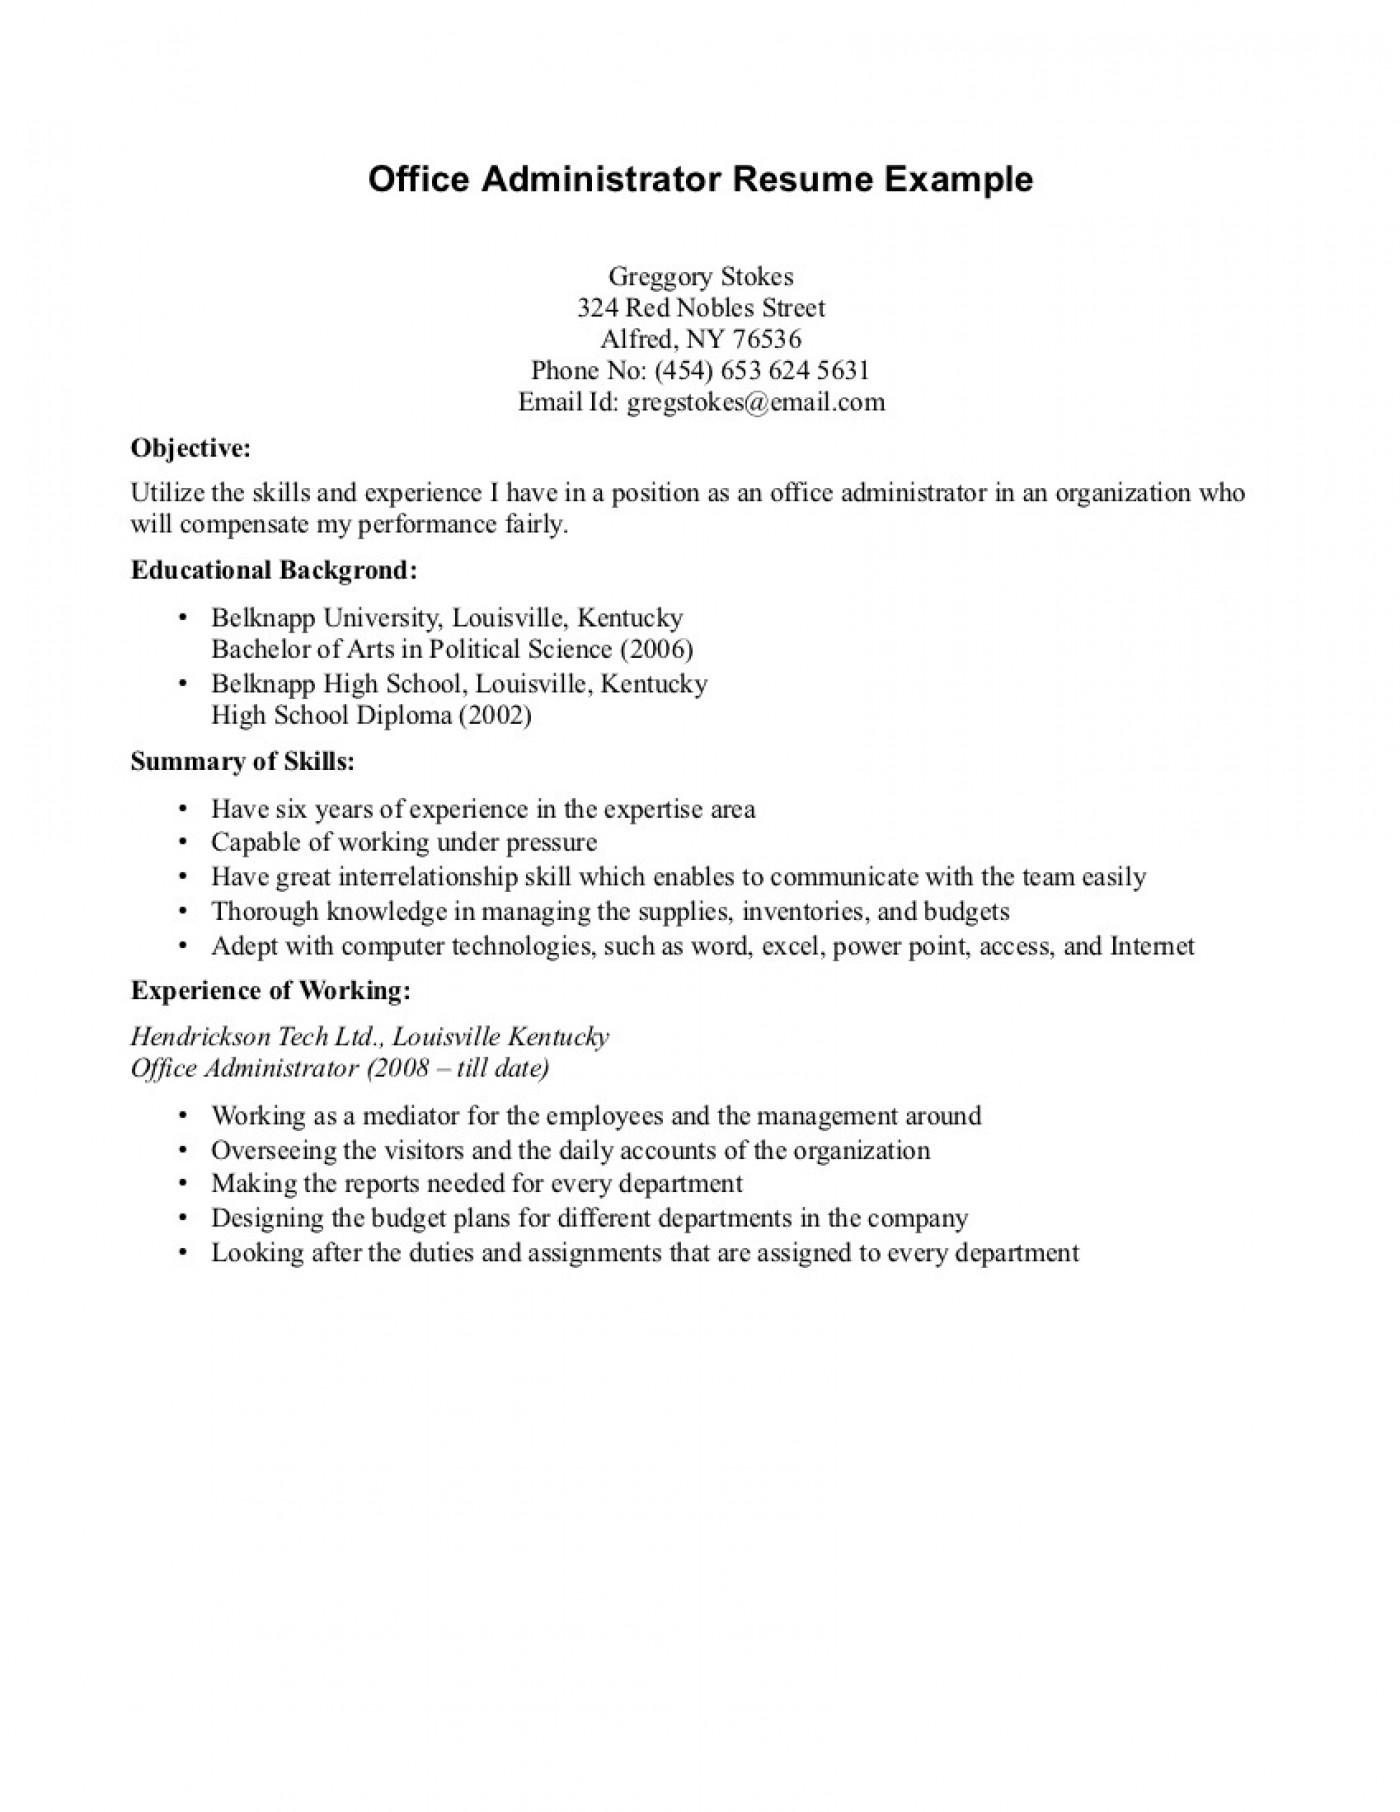 020 Essay Example High School Experience Free Sample Resumes With No Work Cv For Year Old Leaver Dreaded 1400